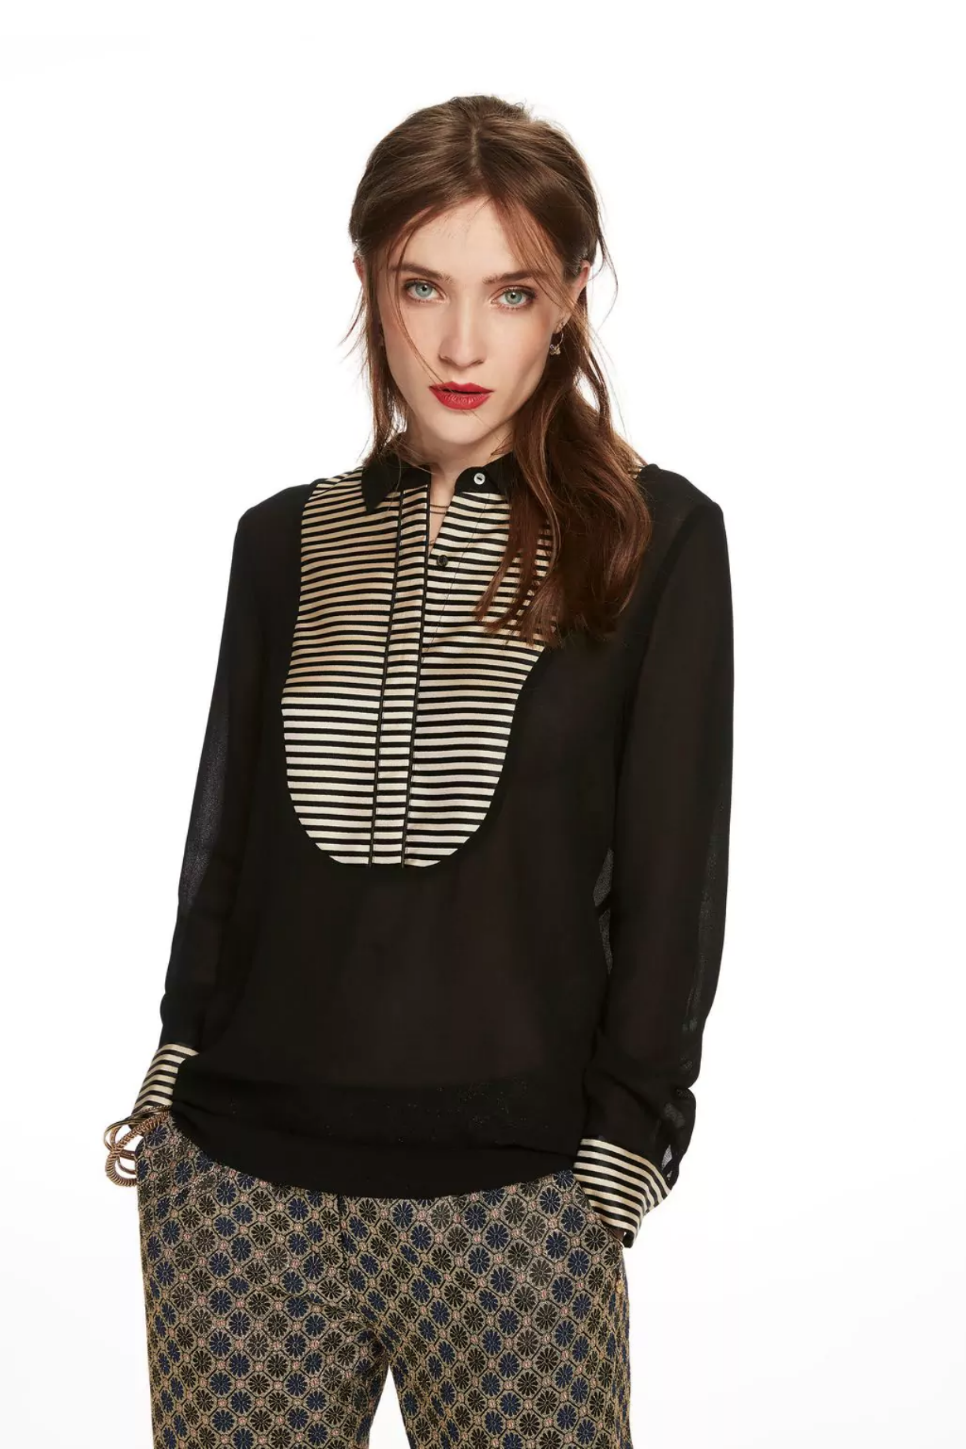 Scotch and Soda - Striped Bib Blouse - Multi - Model